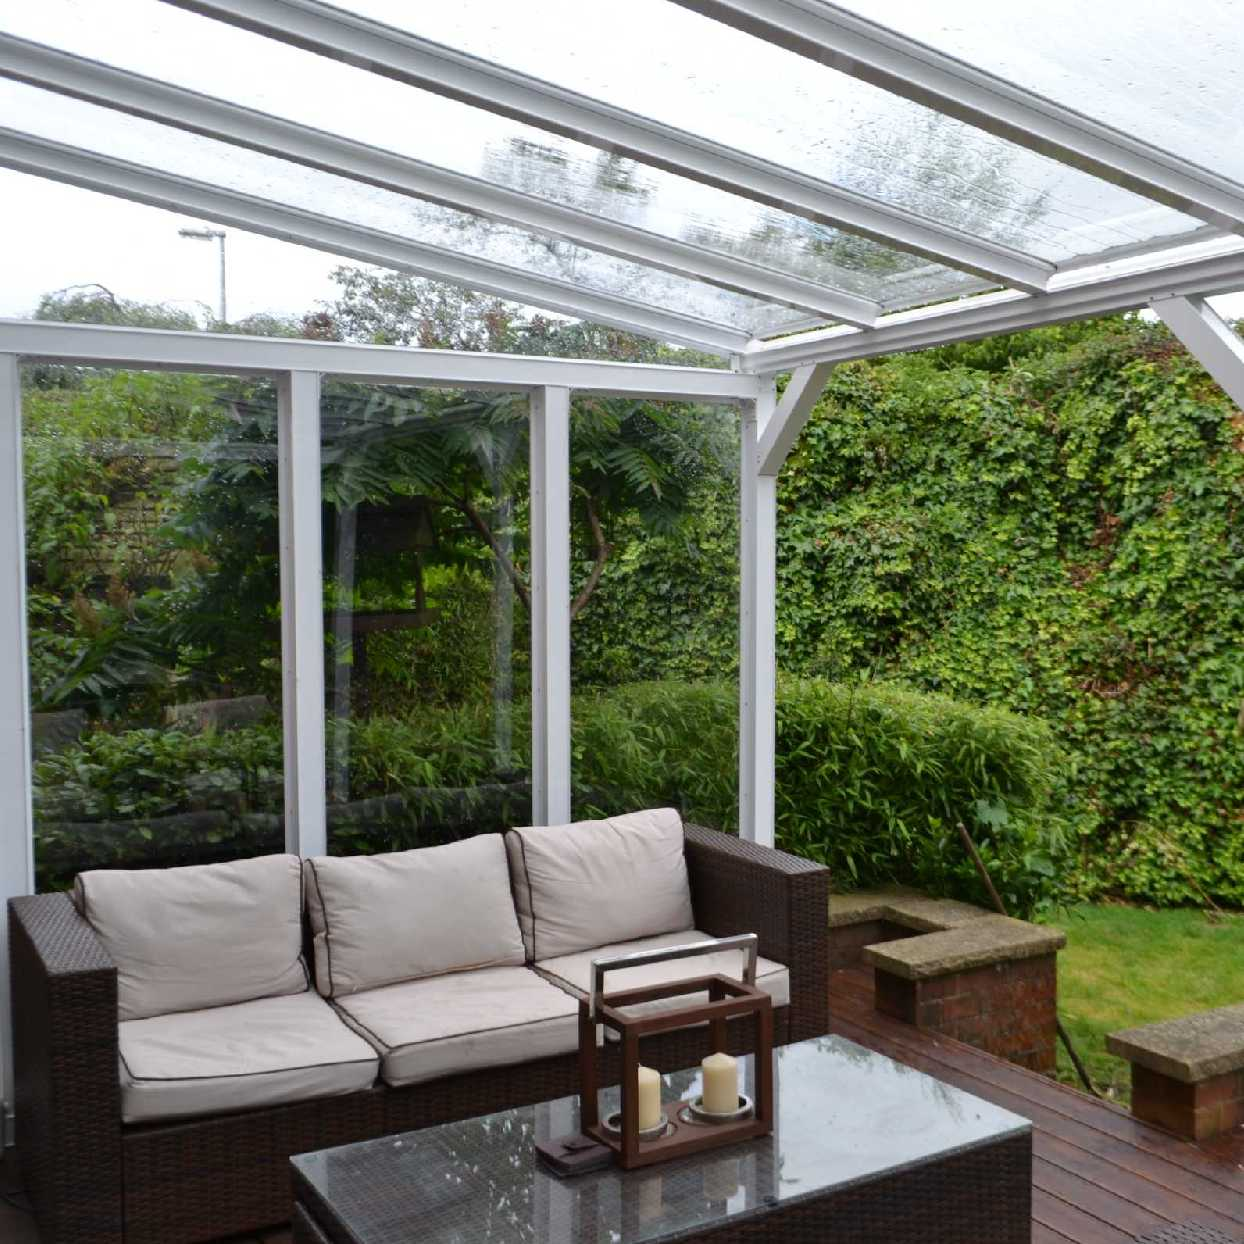 Omega Smart Lean-To Canopy UNGLAZED for 6mm Glazing - 6.3m (W) x 3.0m (P), (4) Supporting Posts